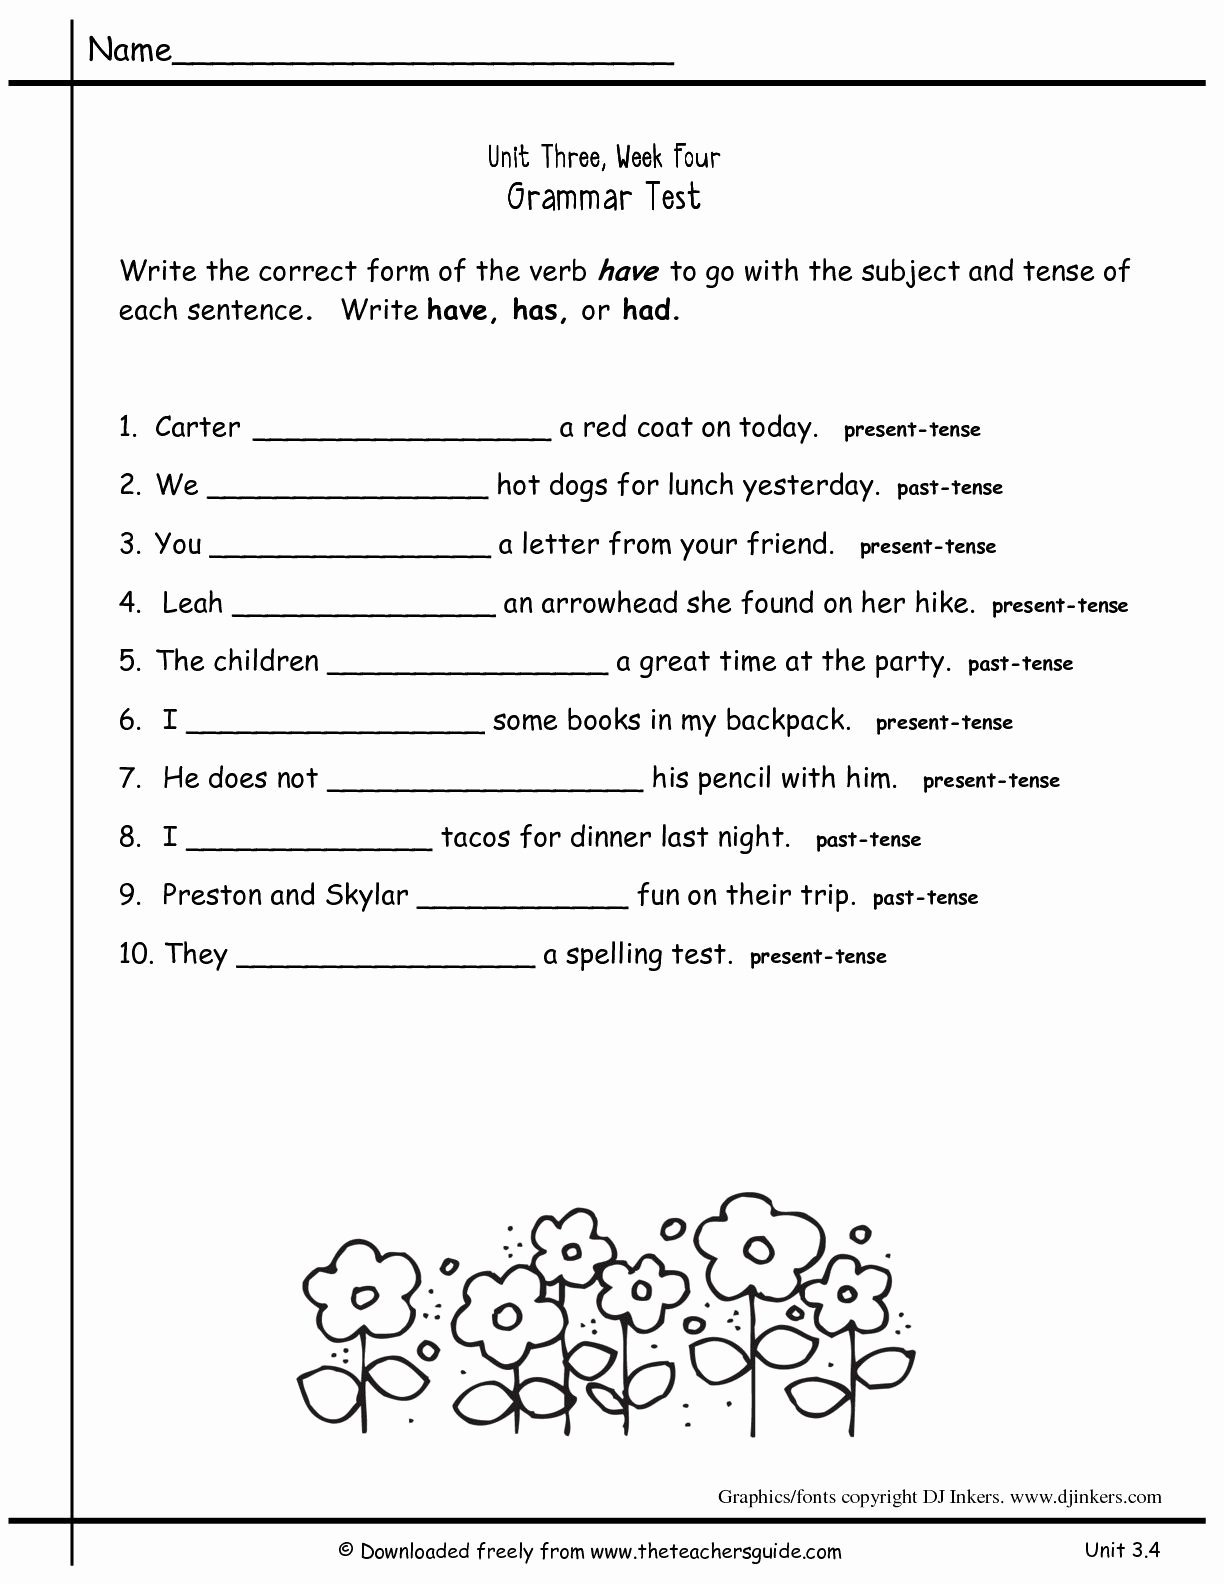 2nd Grade Handwriting Worksheets Pdf Inspirational 2nd Grade Grammar Worksheets Pdf New Worksheets for All